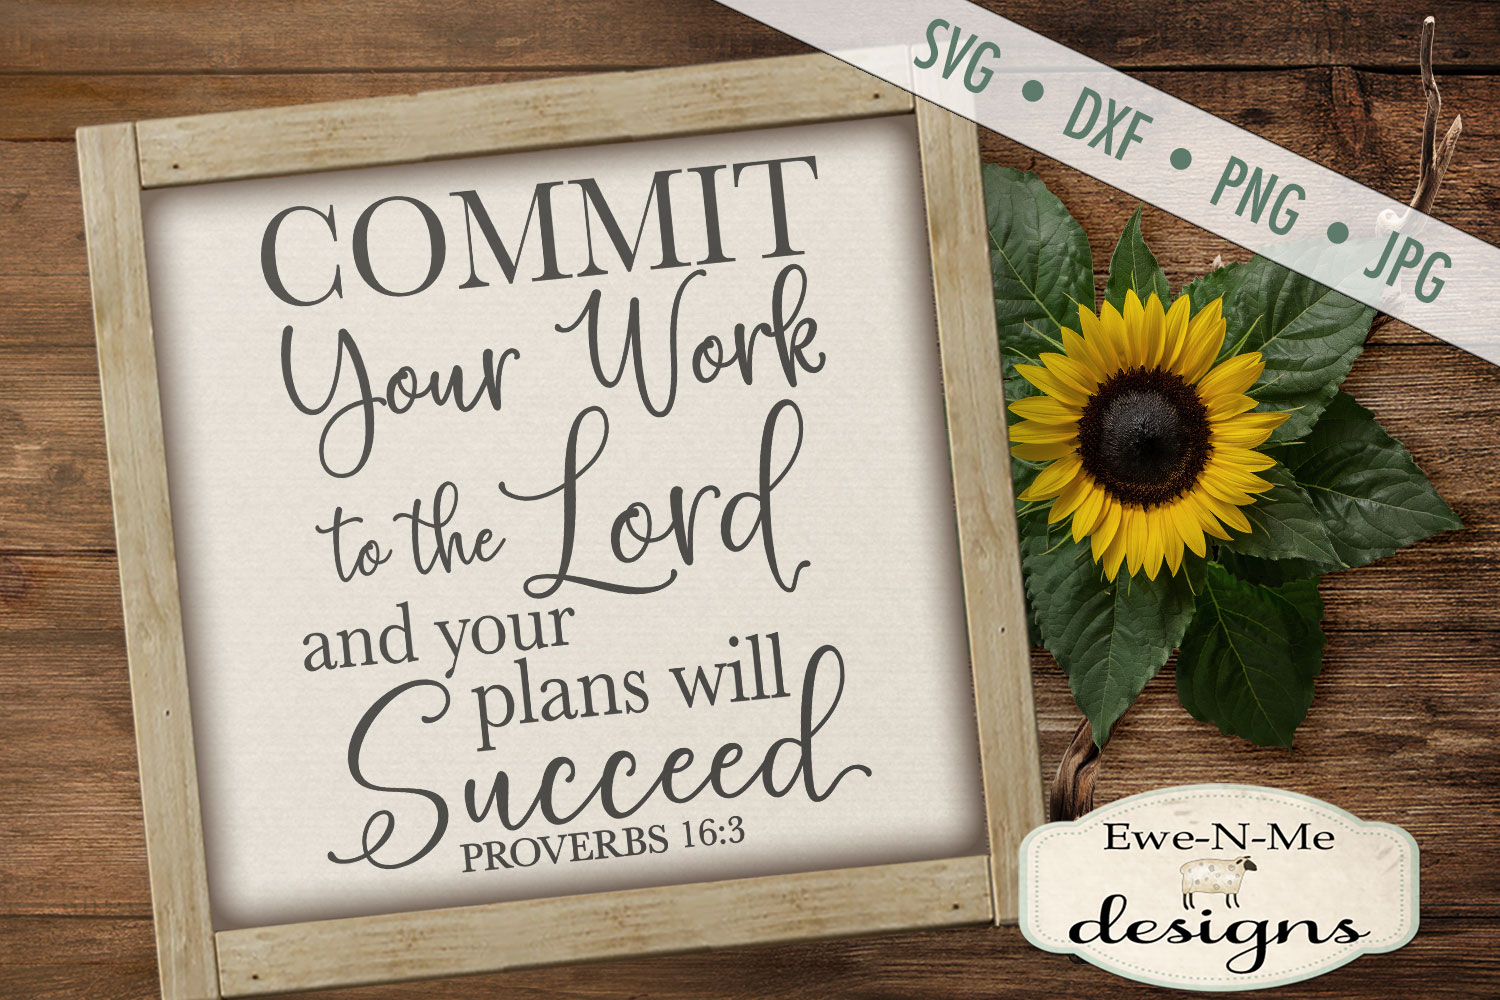 Commit Your Work To The Lord - Bible Verse Proverbs 16 - SVG example image 2